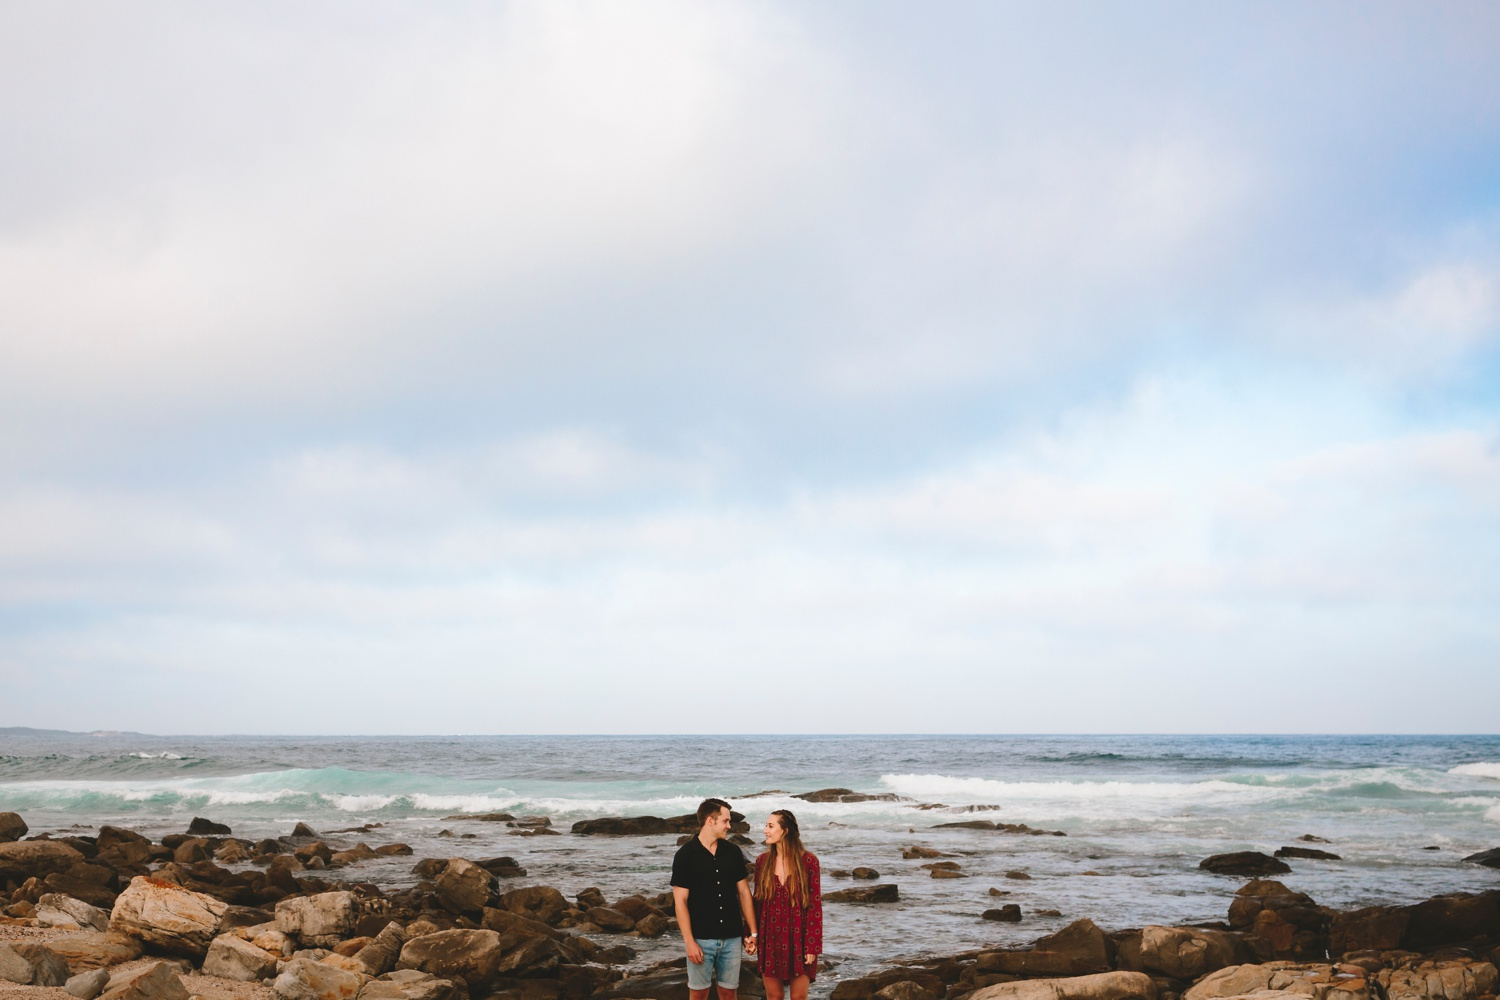 Marie&Andre-CharlieRay-st-francis-cape-ocean-wild-side-couple_0501.jpg